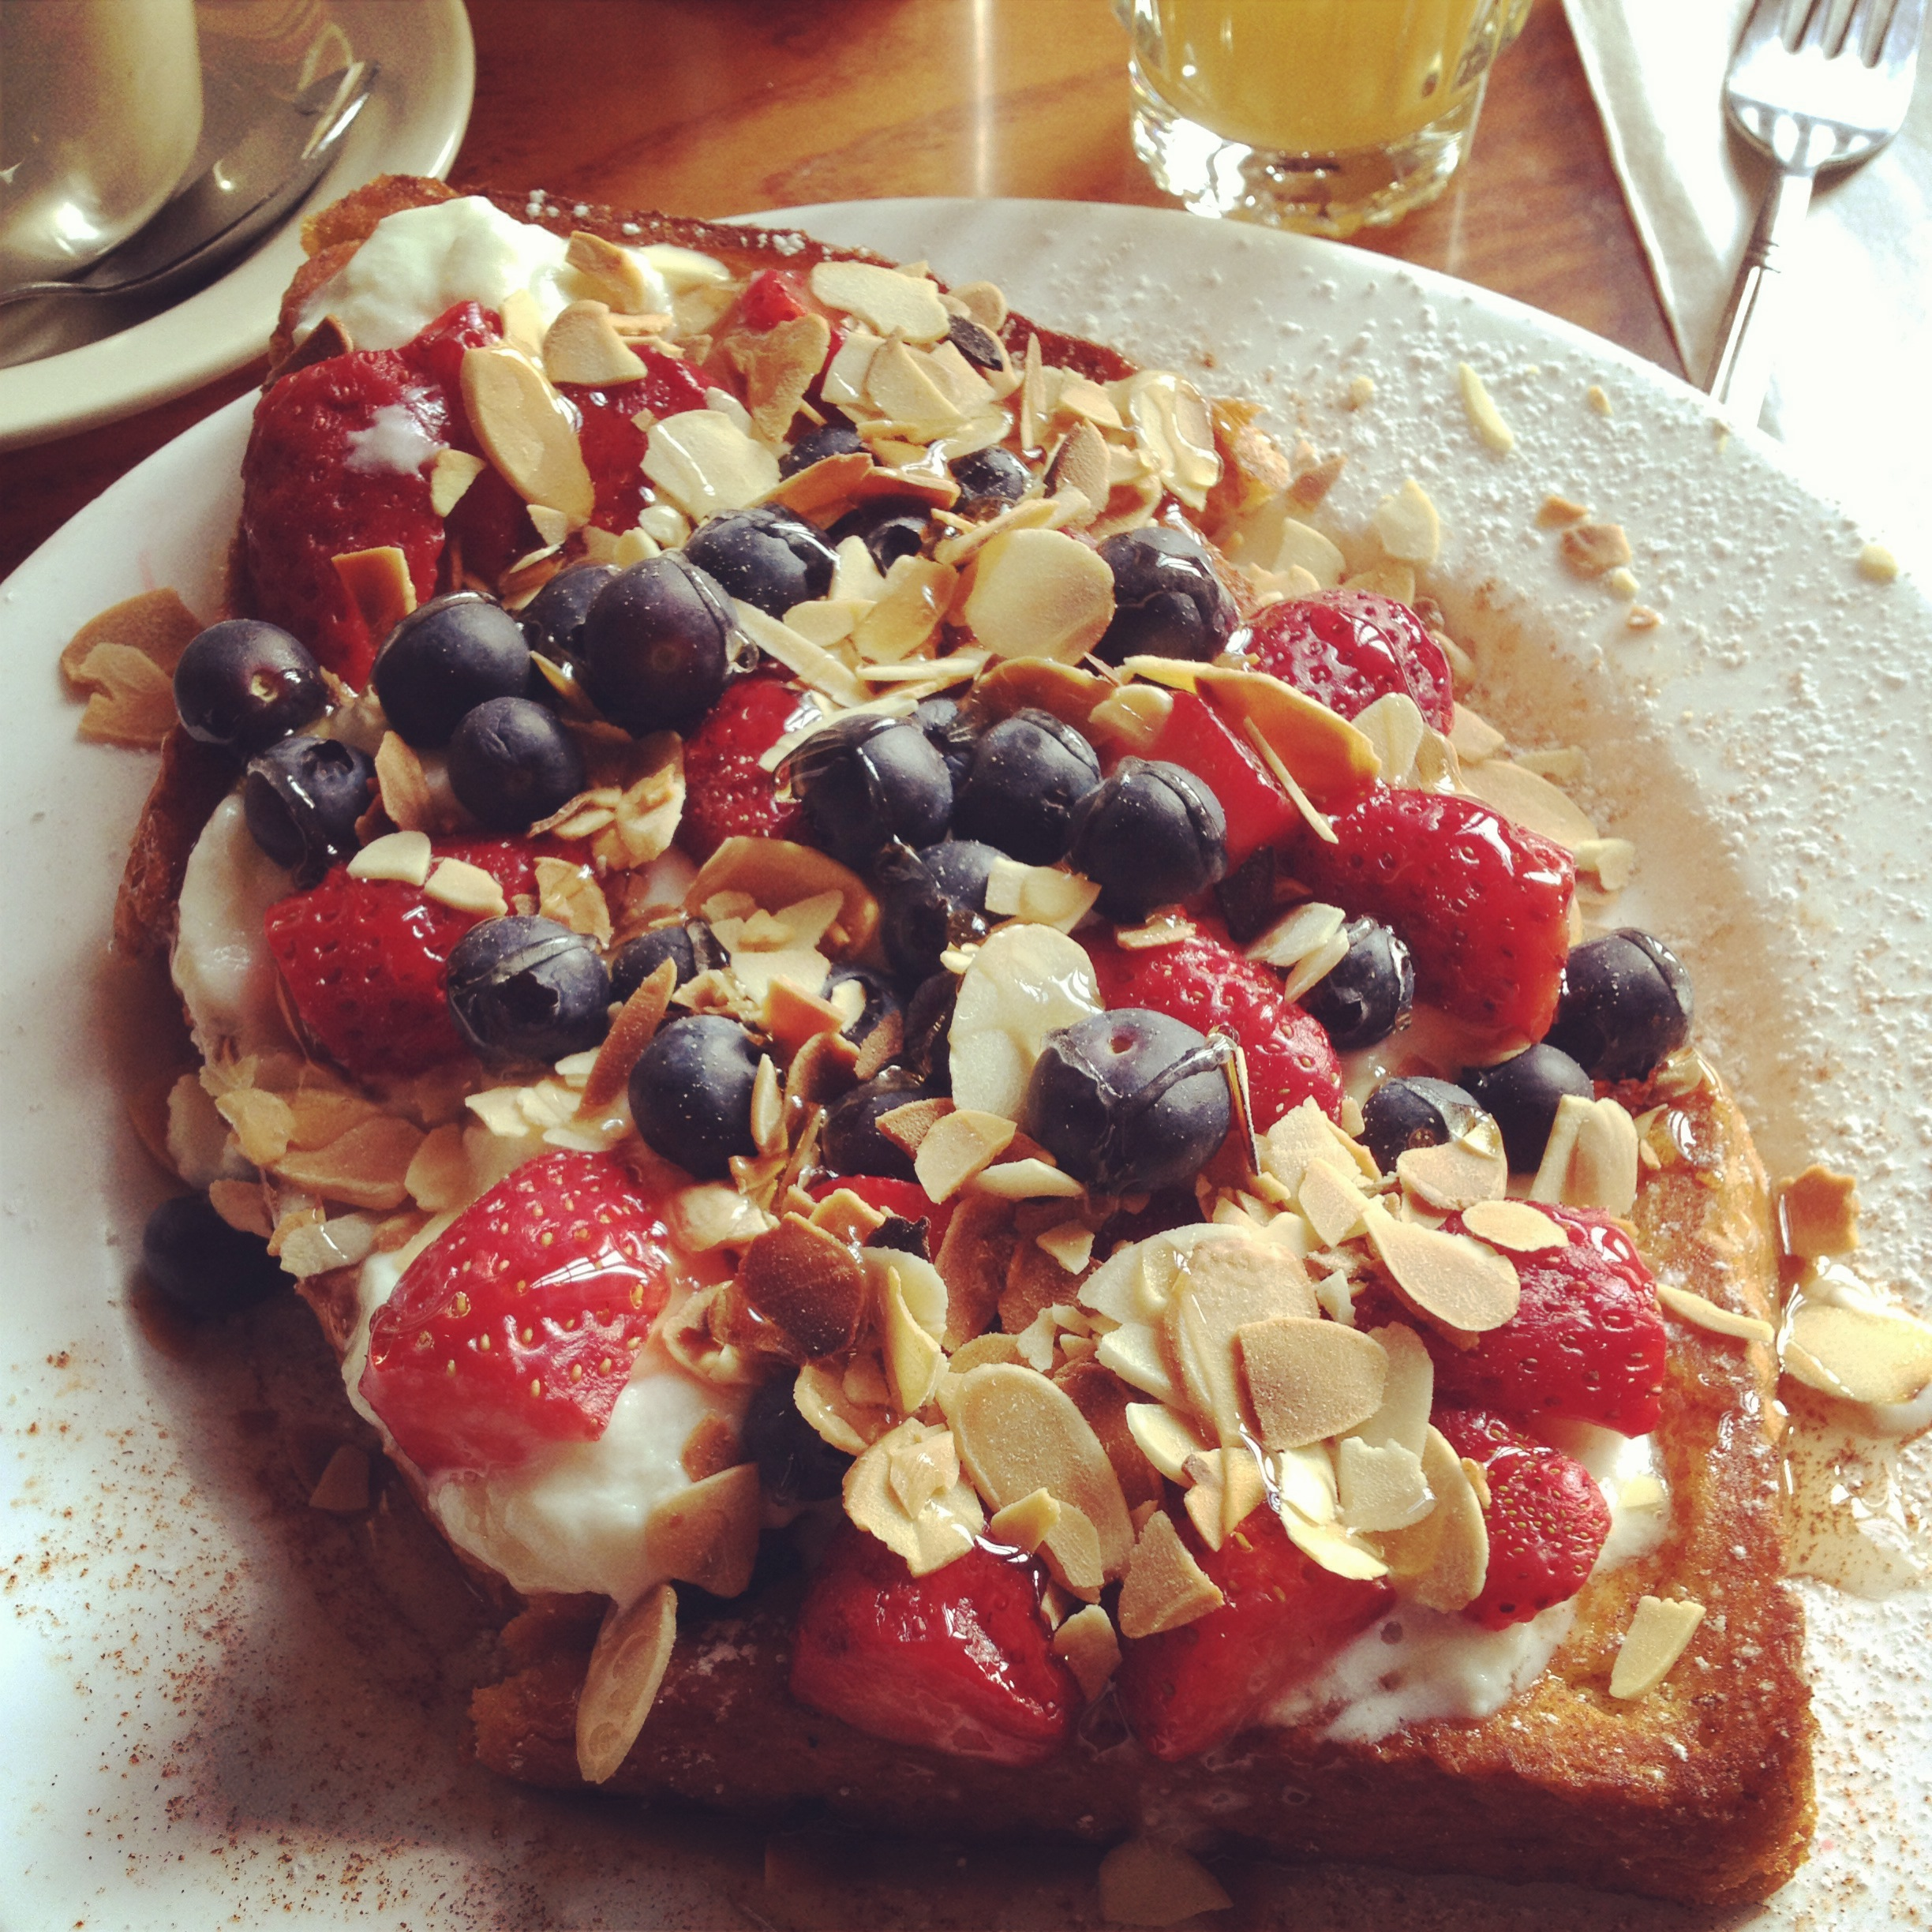 Berry good waffle (substituted for french toast) - Bus Stop Cafe, West Village